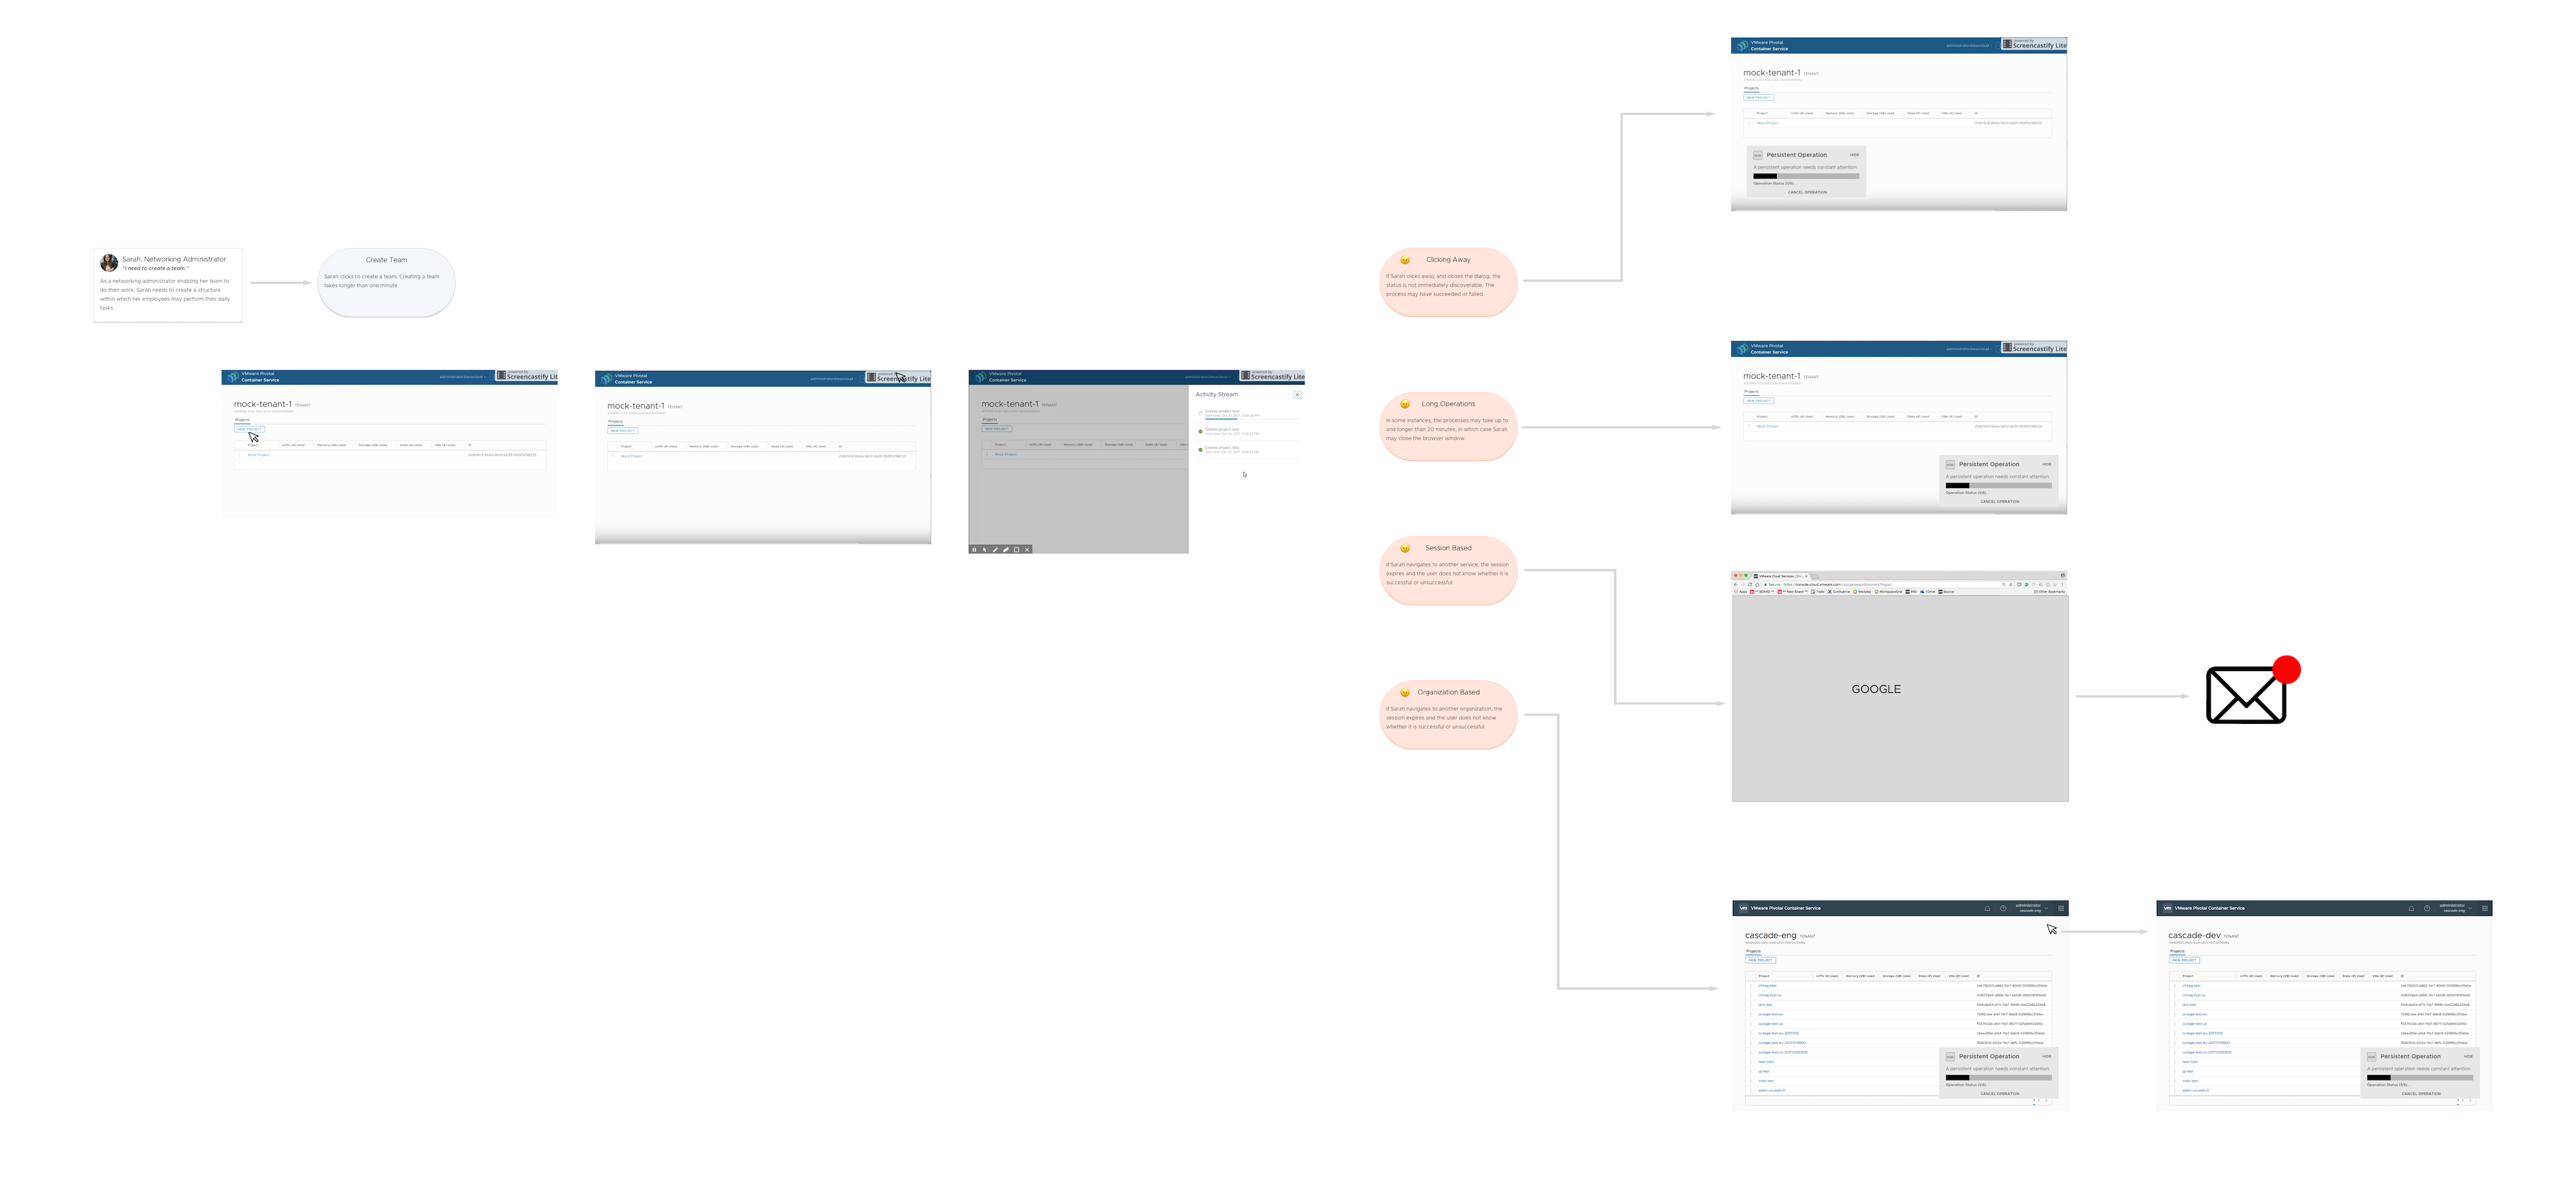 Initial User Journey